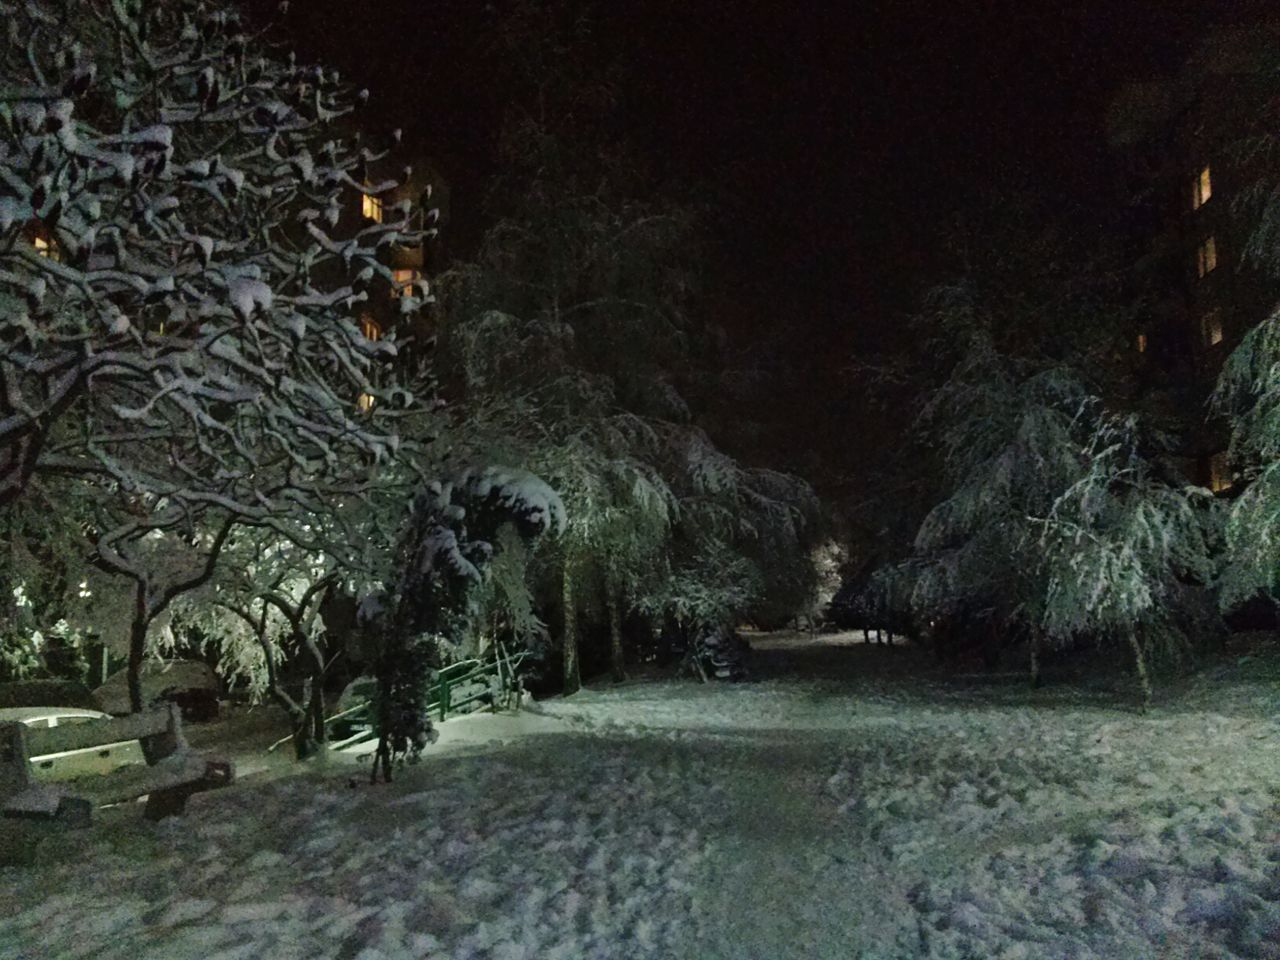 tree, nature, night, winter, cold temperature, the way forward, tranquility, snow, no people, landscape, growth, outdoors, beauty in nature, branch, scenics, forest, bare tree, illuminated